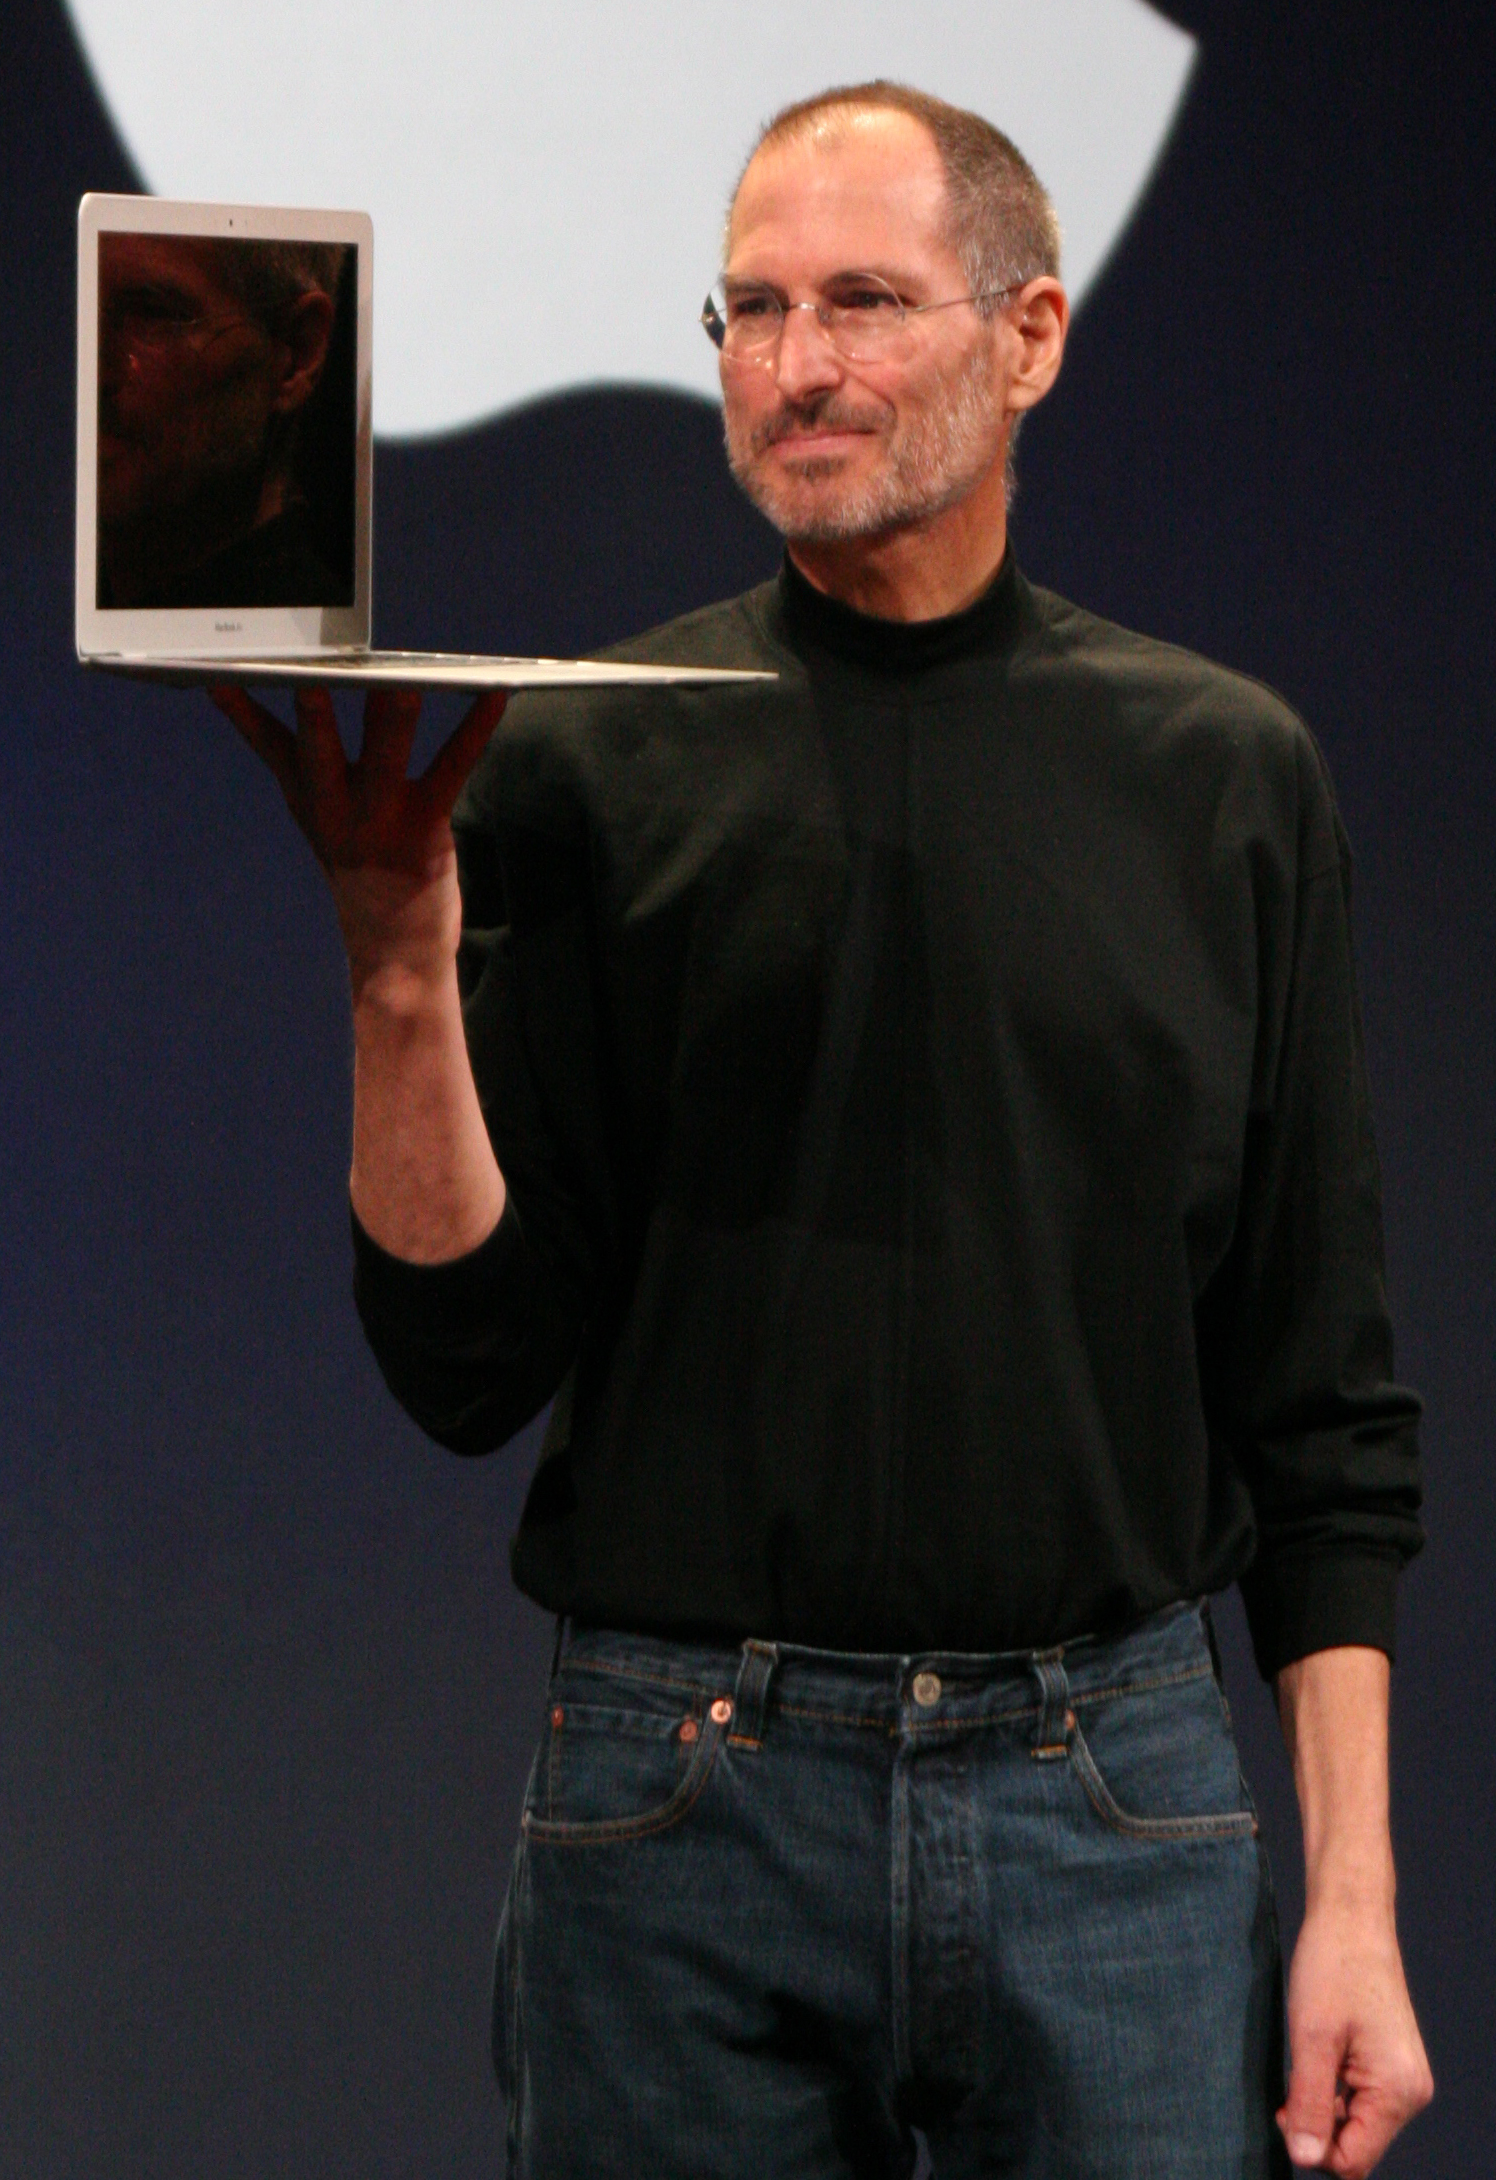 http://upload.wikimedia.org/wikipedia/commons/5/54/Steve_Jobs.jpg